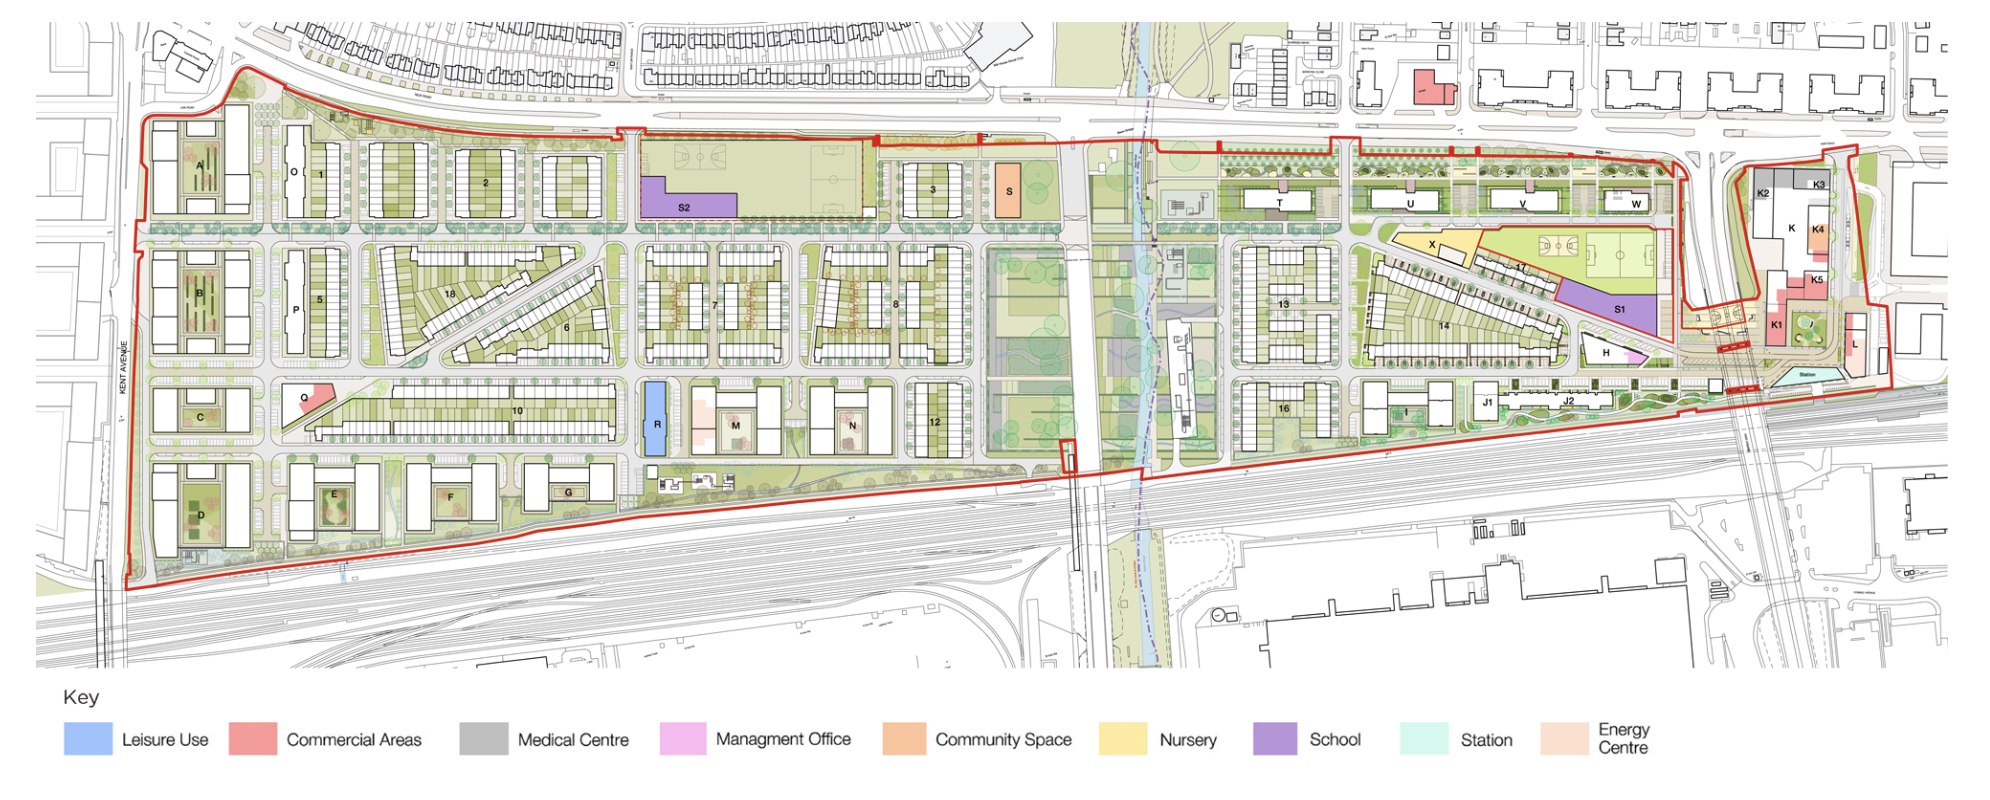 Beam Park proposals include 3,000 homes, a rail station and two primary schools